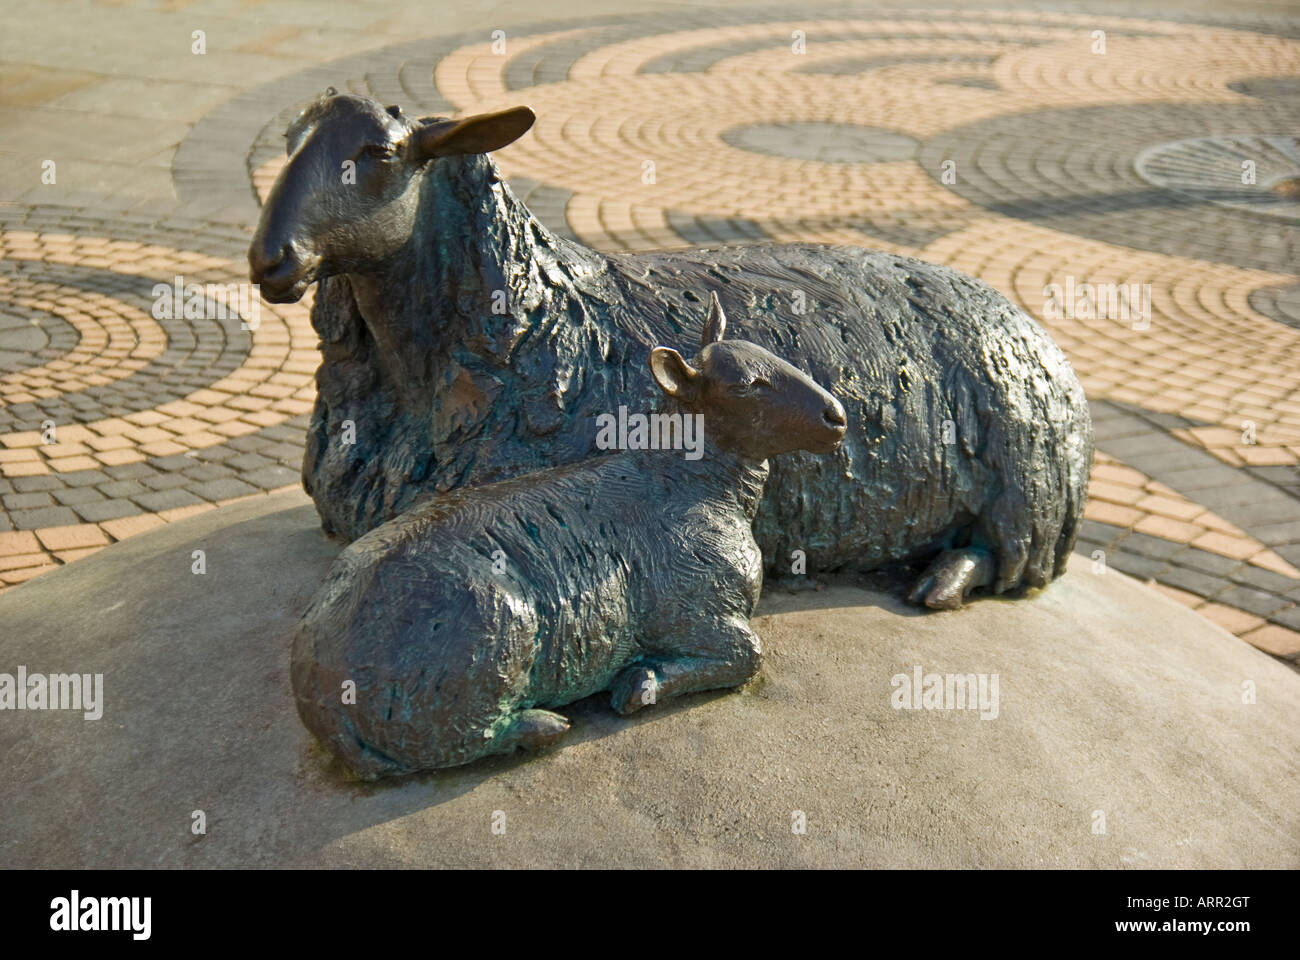 Sculpture of sheep ewe and lamb on display in public space in Calne Wiltshire England Uk EU - Stock Image